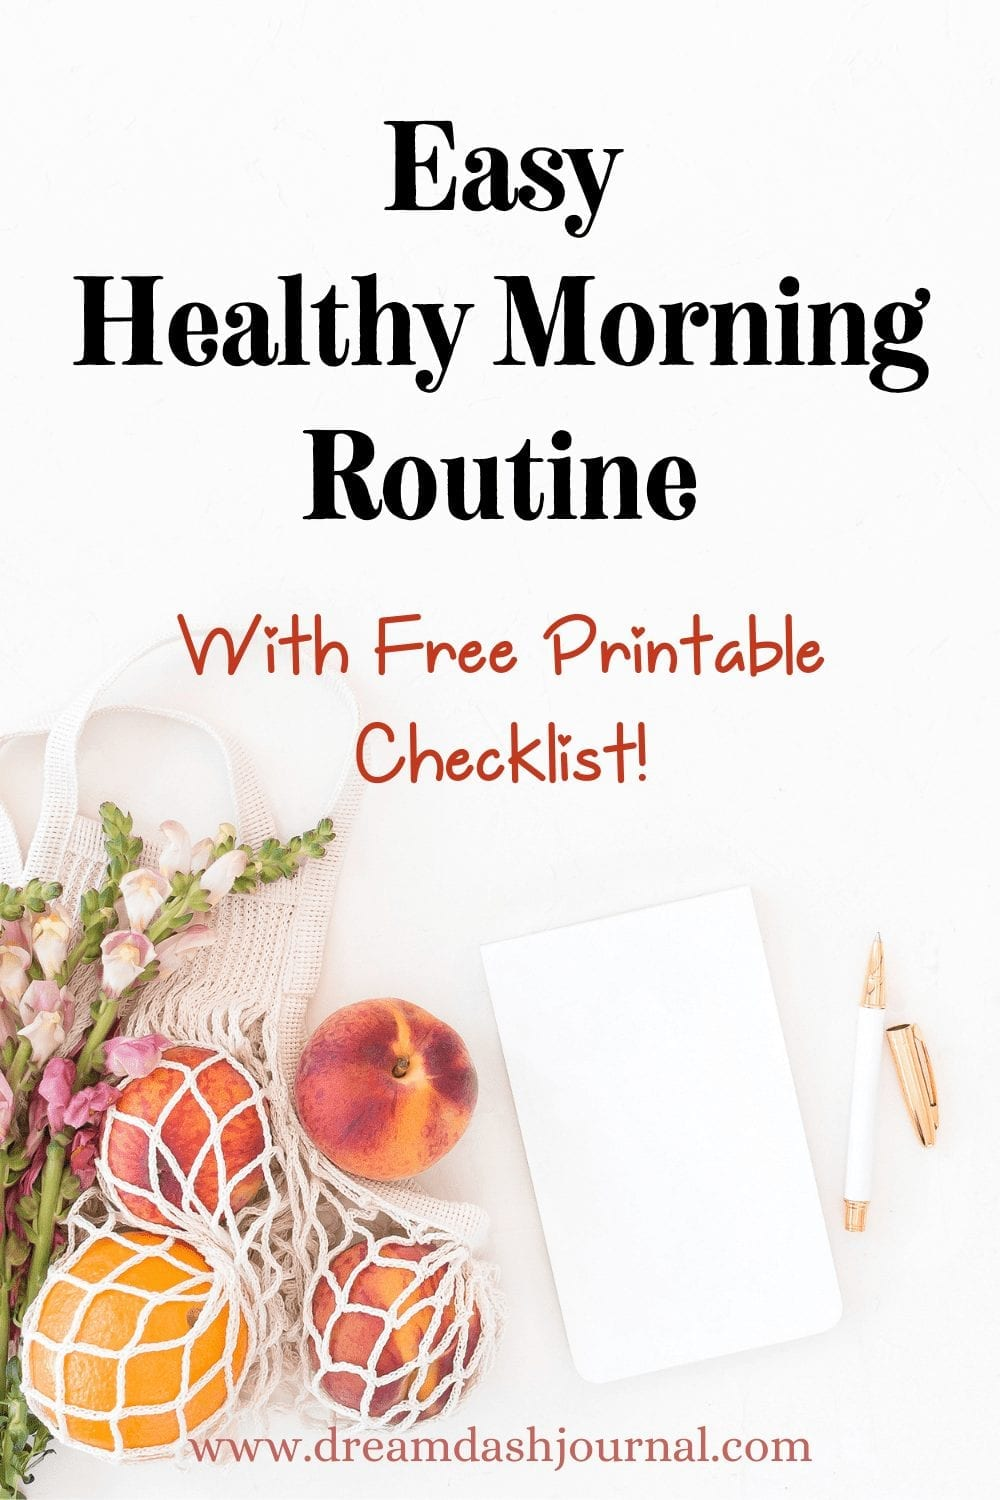 Easy Healthy Morning Routine- Printable Checklist Included {Free PDF!}